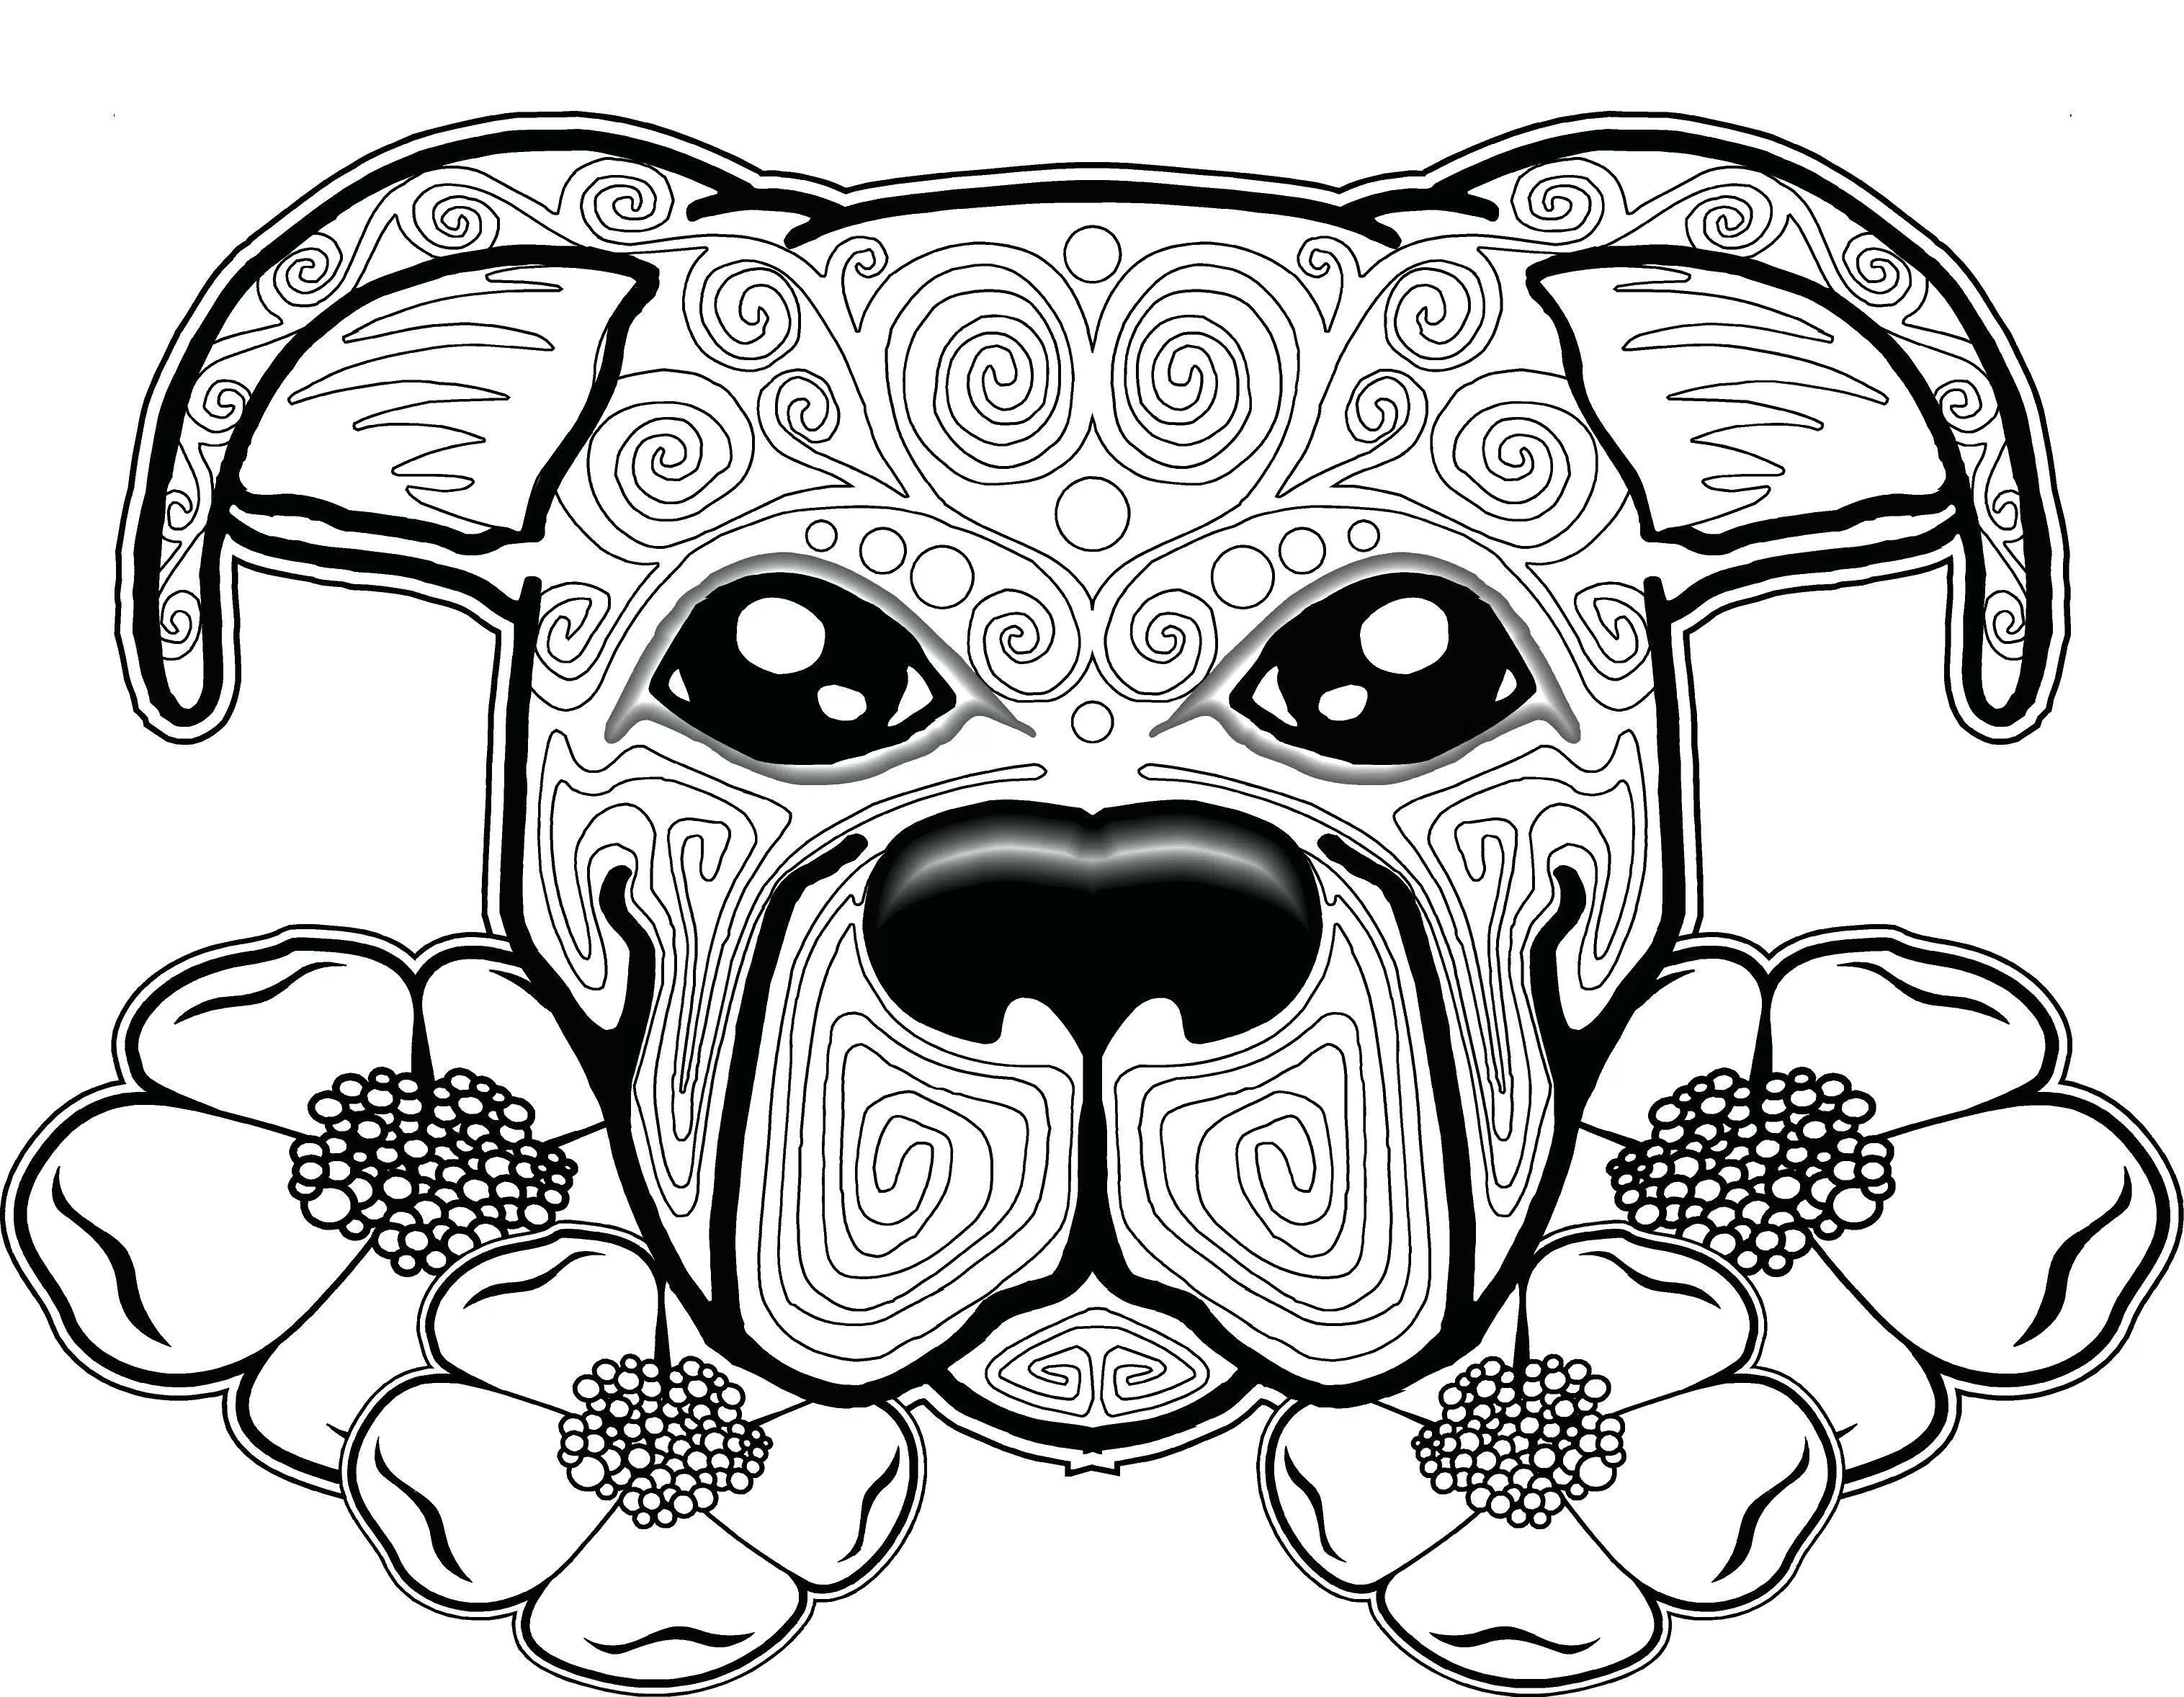 Dog Coloring Pages for Adults - Best Coloring Pages For Kids